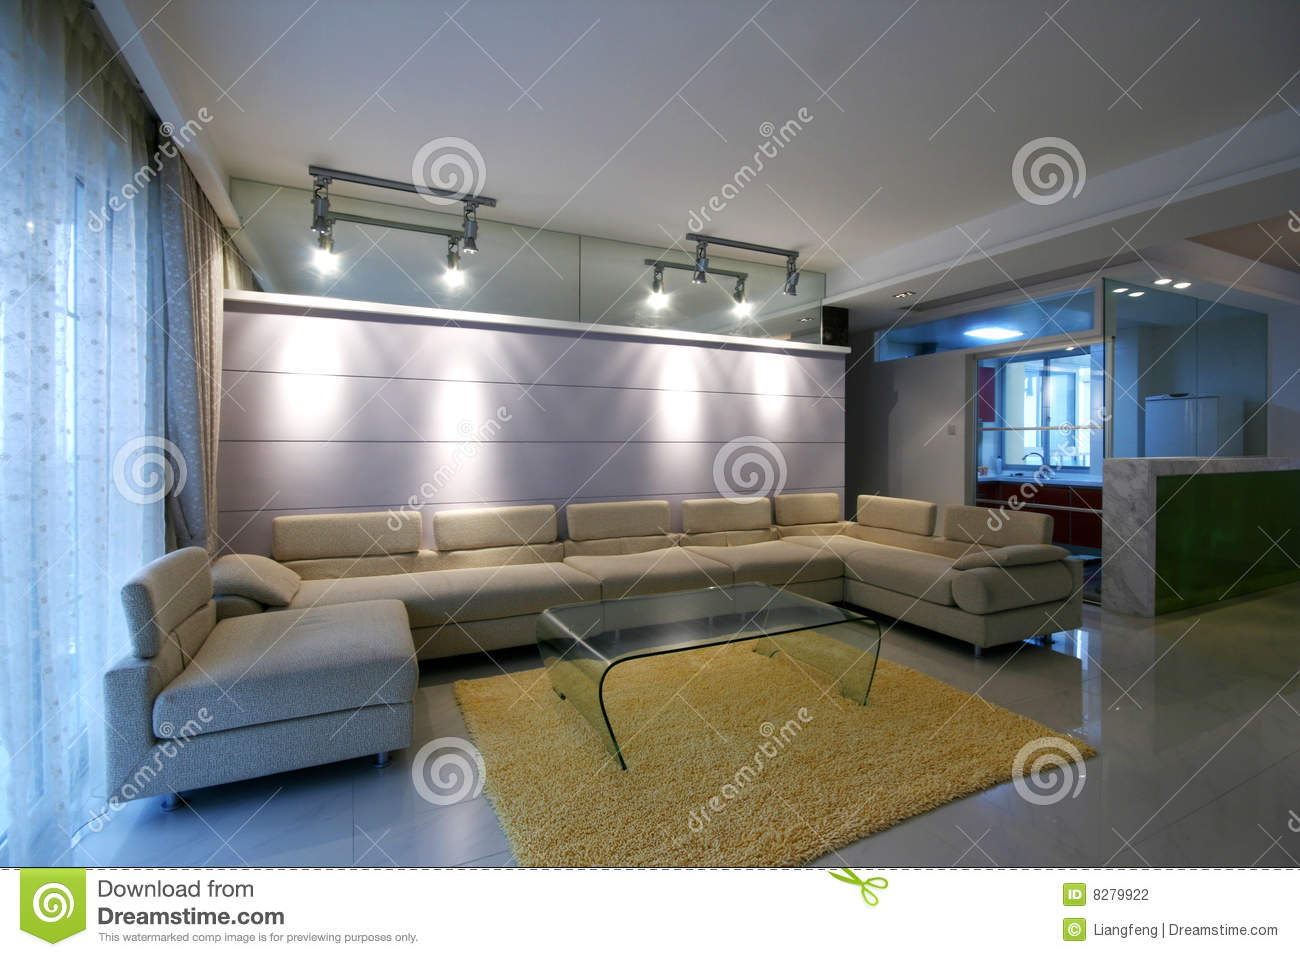 Concise and home decoration stock photography image 8279922 for Moderne huisdecoratie